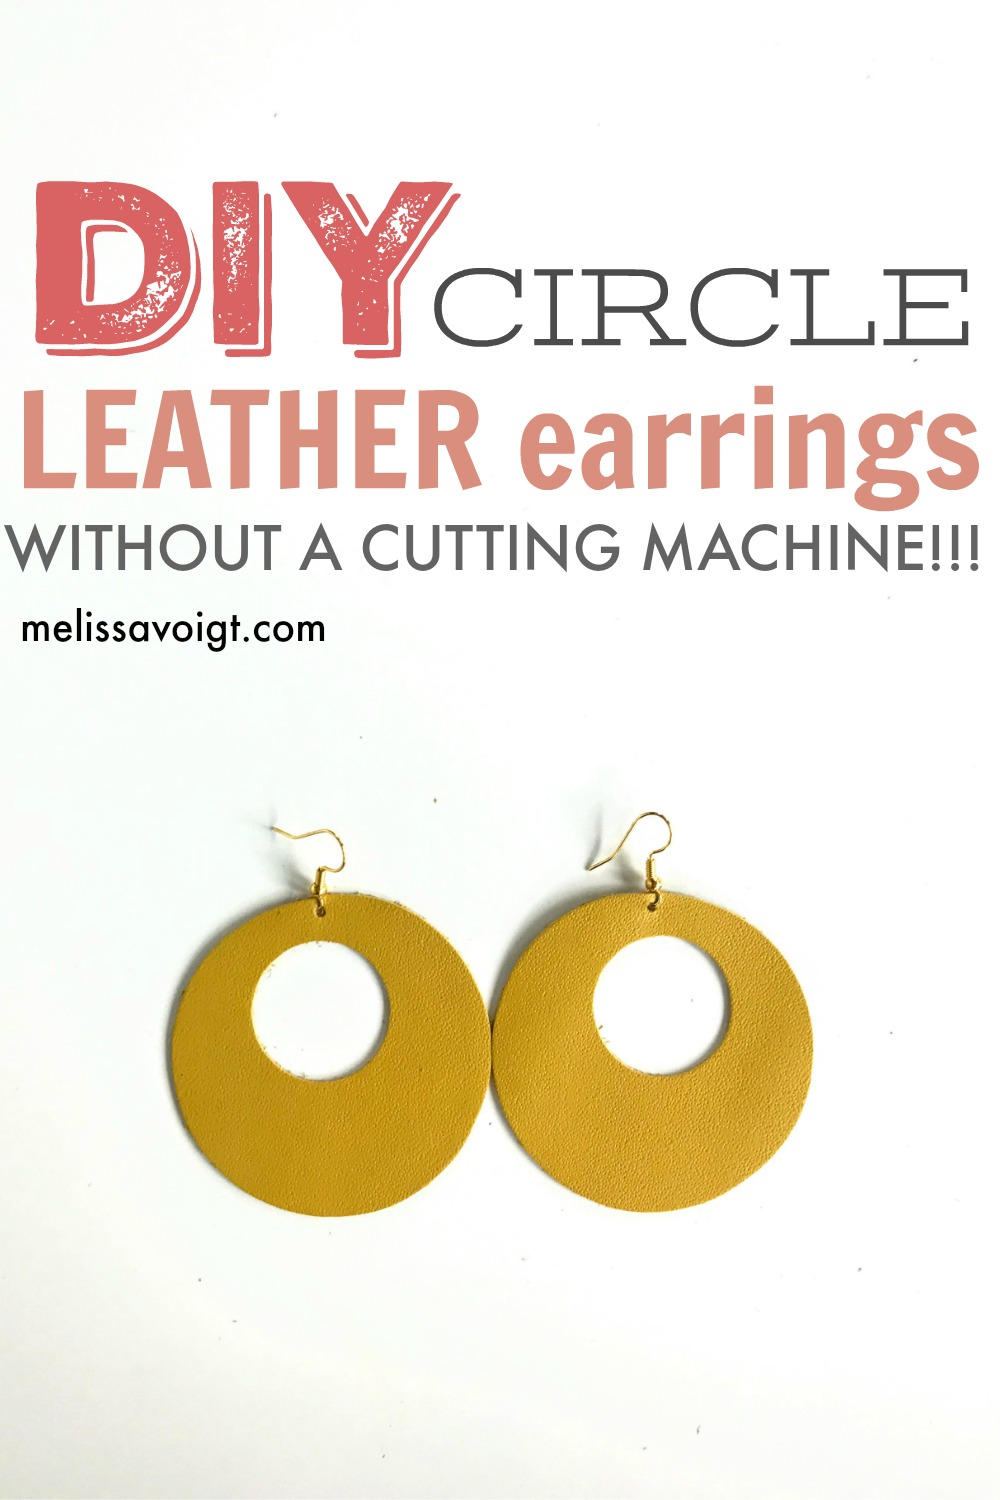 Circle leather earrrings diy.jpg